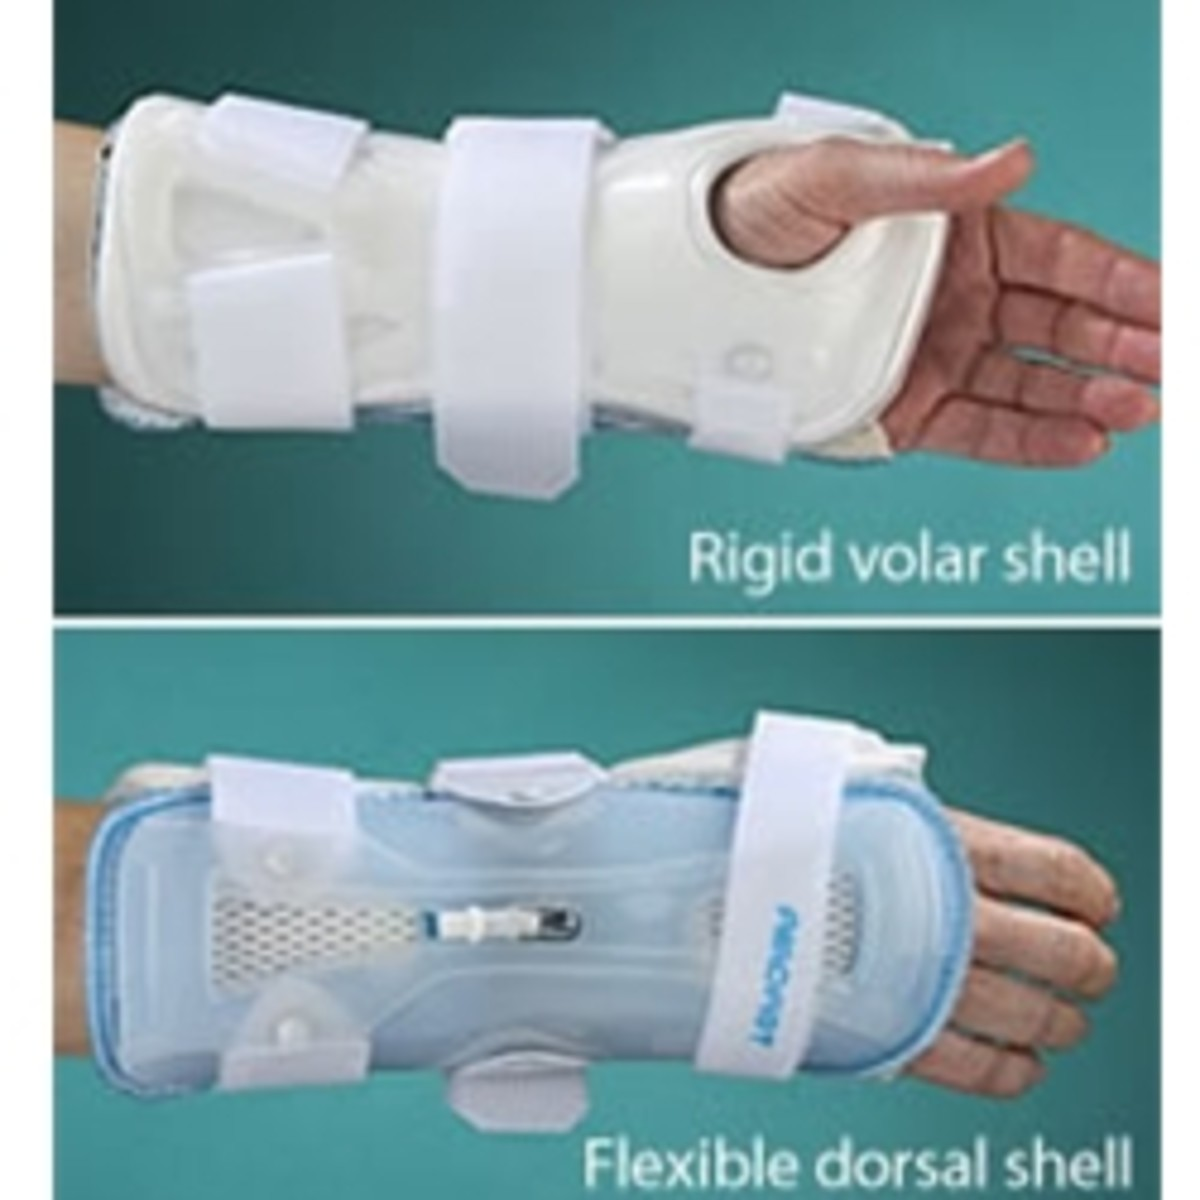 This is the Aircast I got. It can be found at: http://www.dme-direct.com/aircast-stabilair-wrist-orthosis